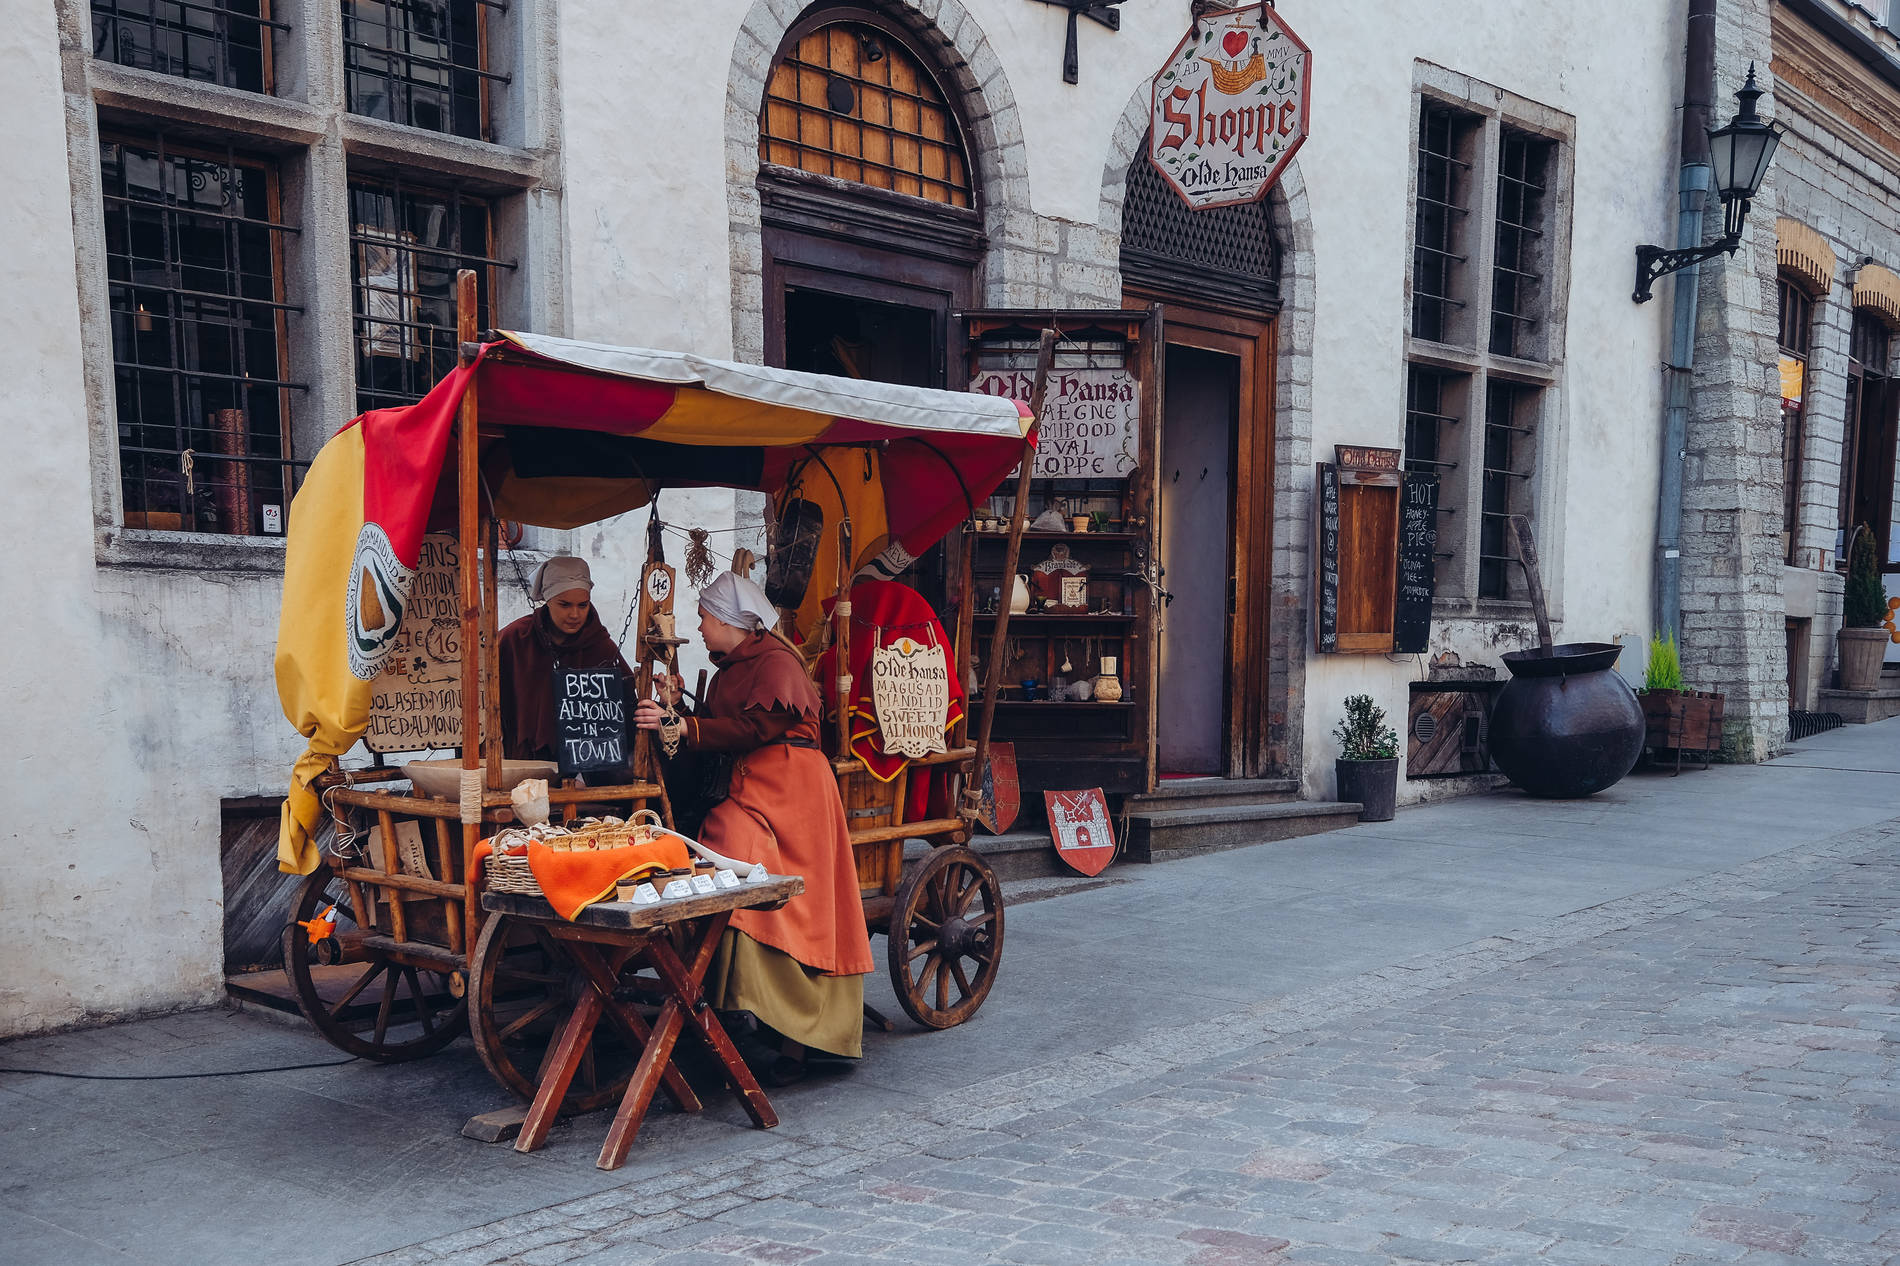 Almond cart of the Olde Hansa restaurant with two women in medieval costumes in the Old Town of Tallinn, Estonia.